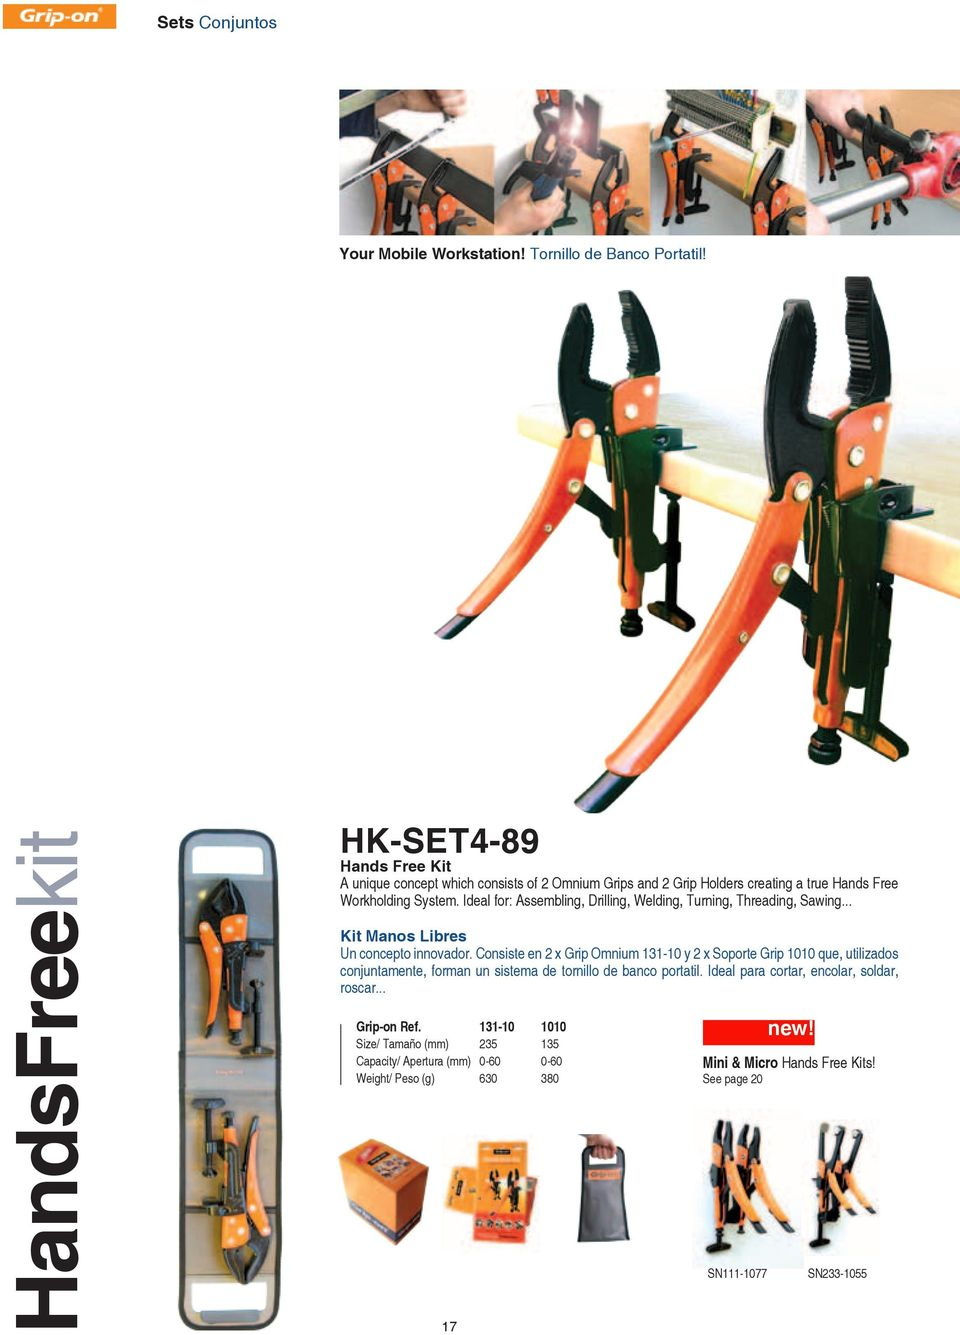 Ideal for: Assembling, Drilling, Welding, Turning, Threading, Sawing... Kit Manos Libres Un concepto innovador.